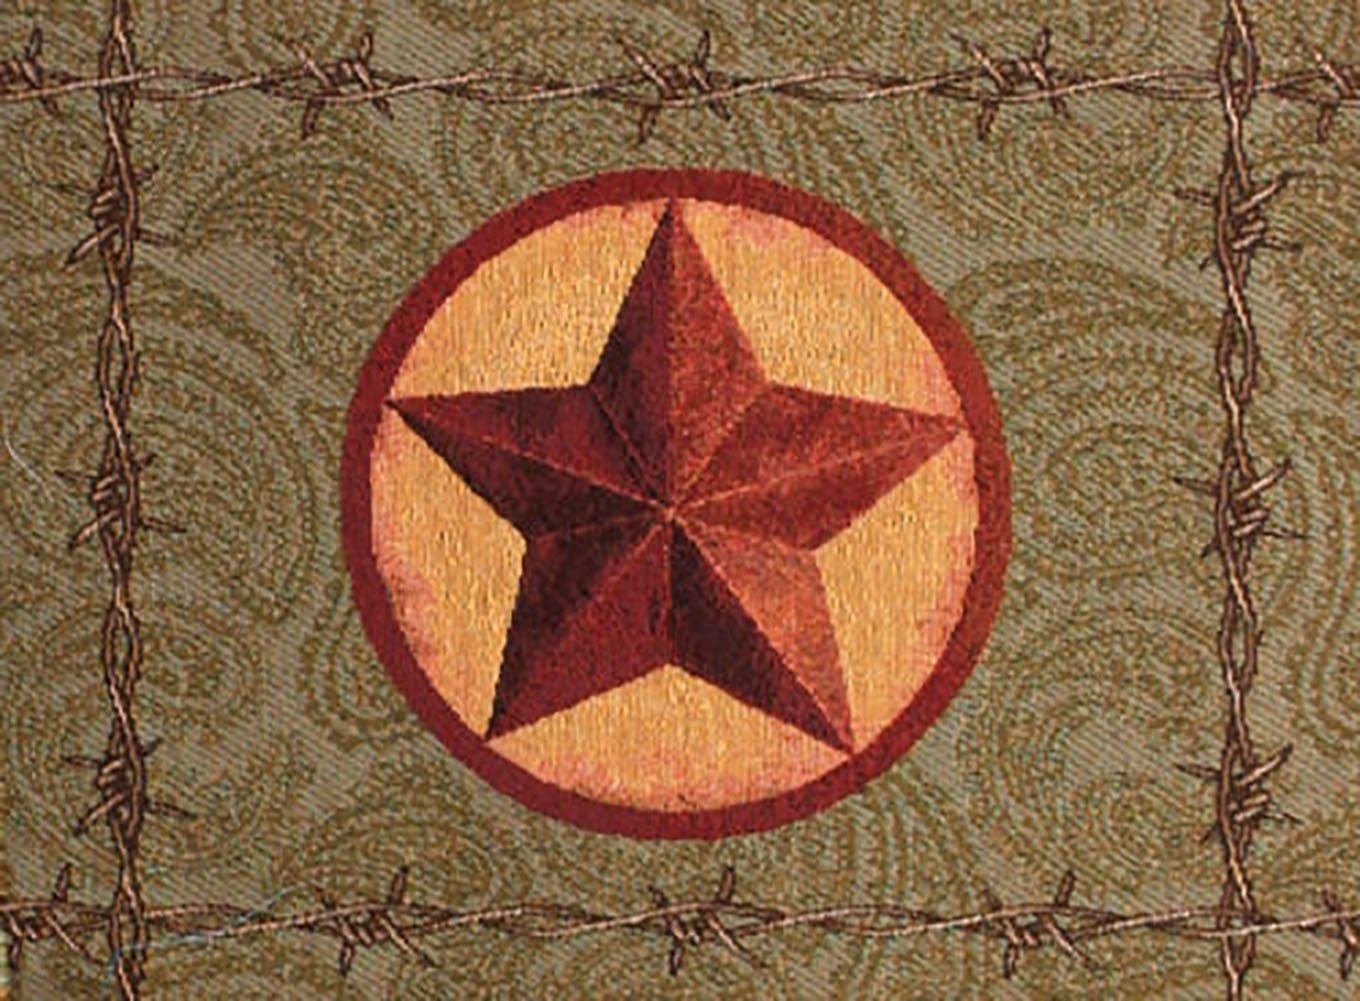 """Unique & Custom {12.5'' x 18'' Inch} Single Pack of Rectangle """"Non-Slip Grip Texture"""" Large Table Placemat Made of Washable Cotton & Polyester w/ Country Western Star Design [Colorful Brown & Red]"""